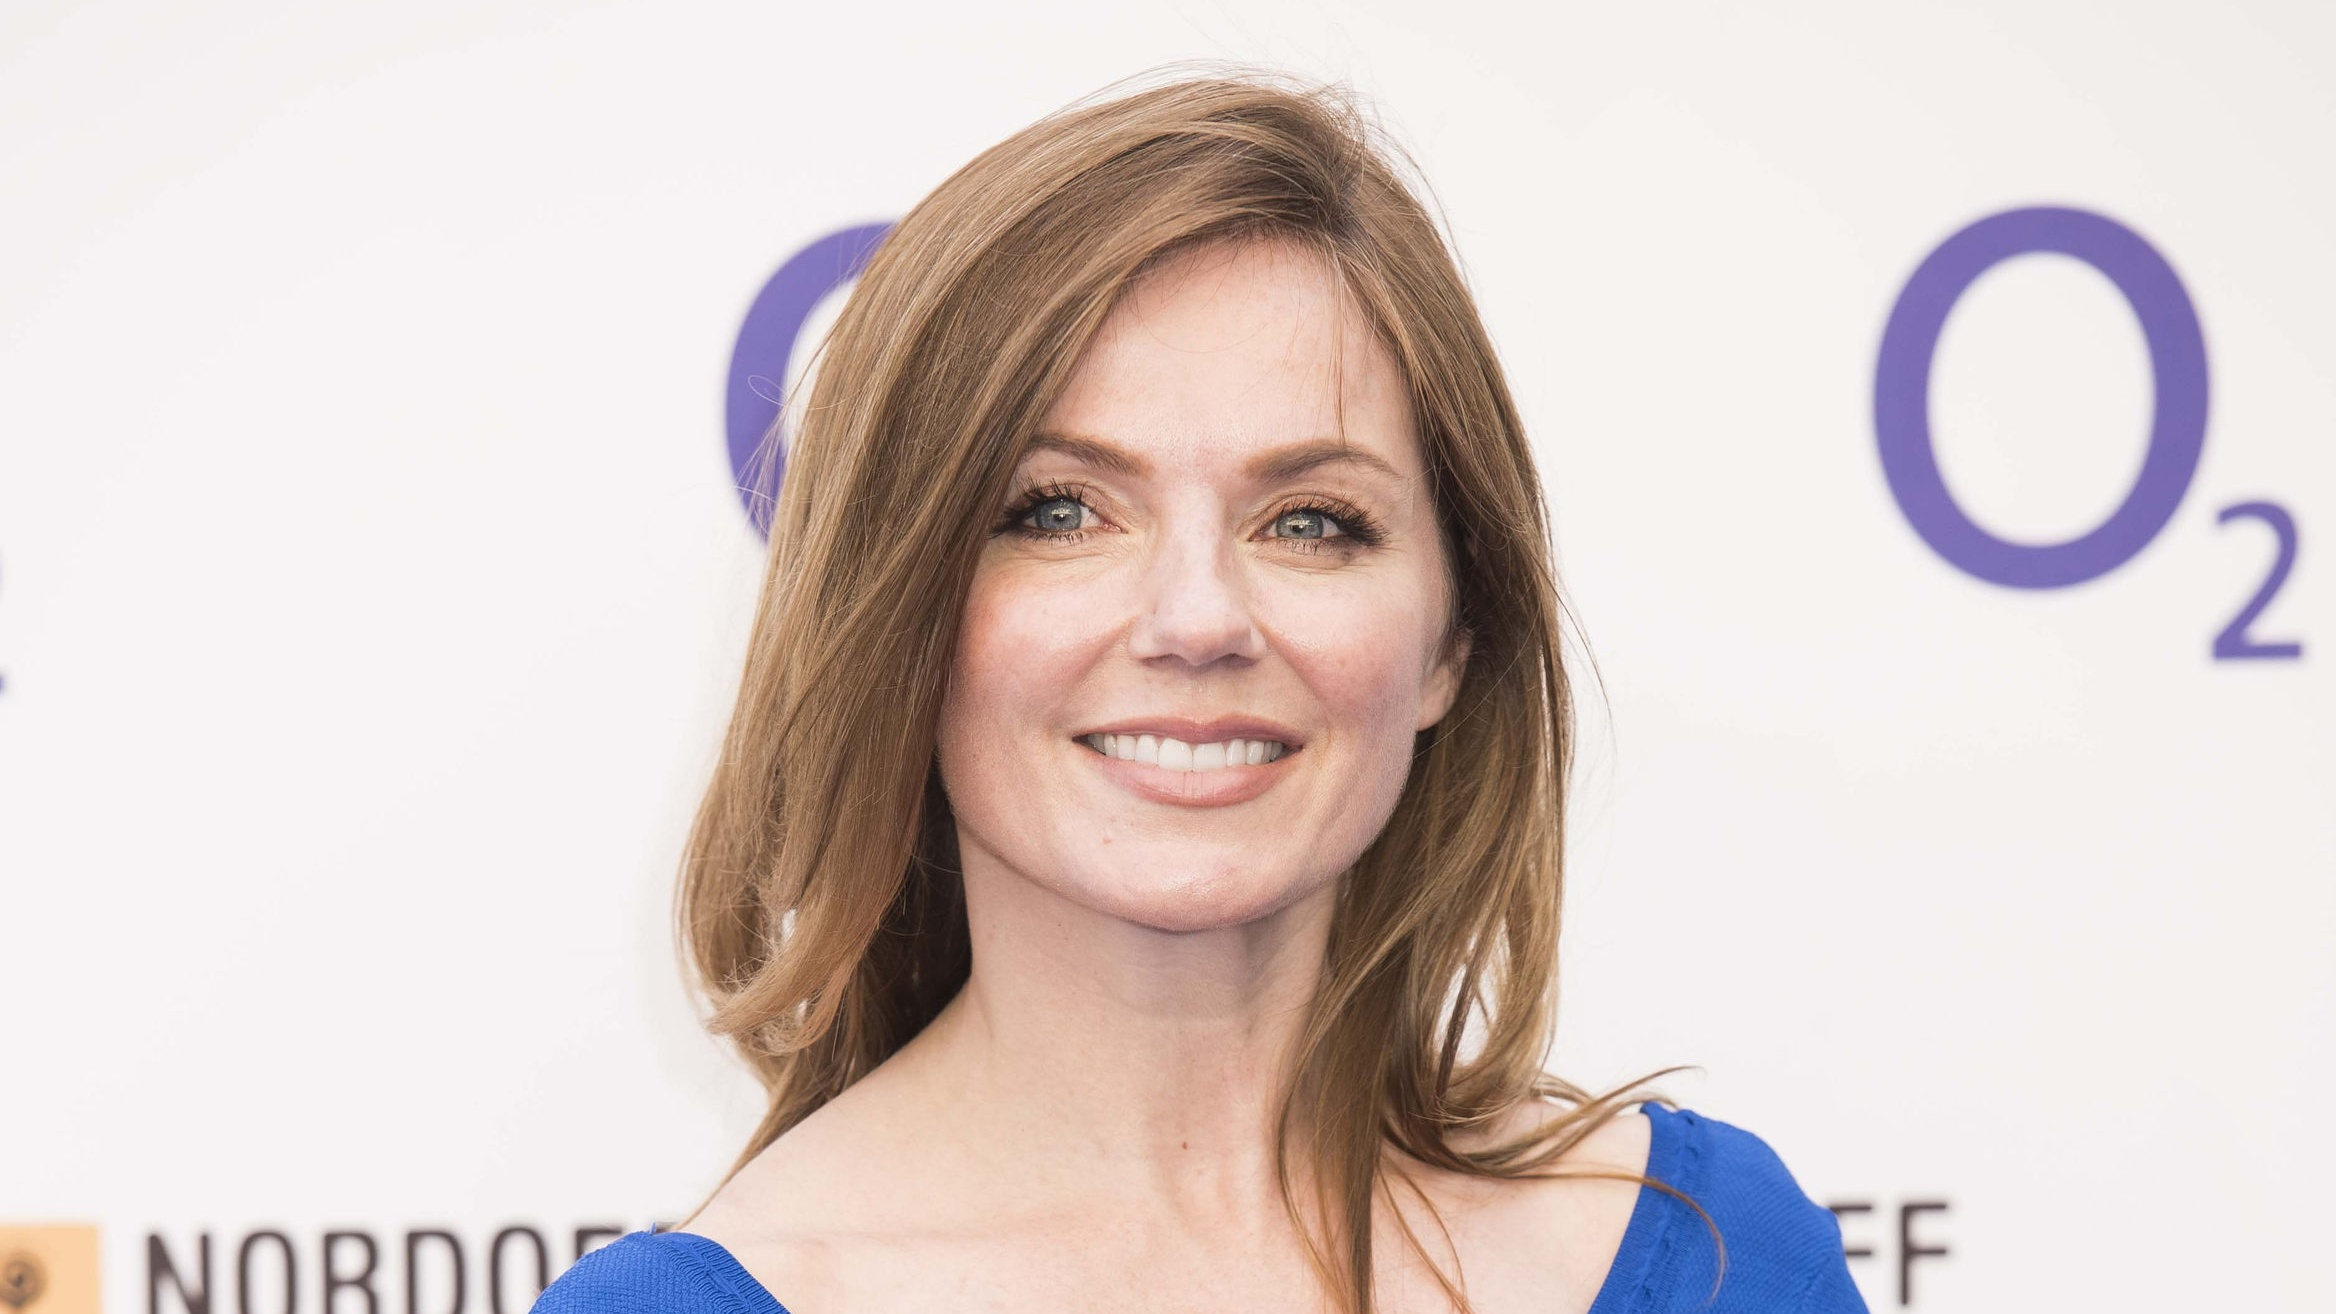 Fans praise Geri Horner's touching tribute tune to George Michael